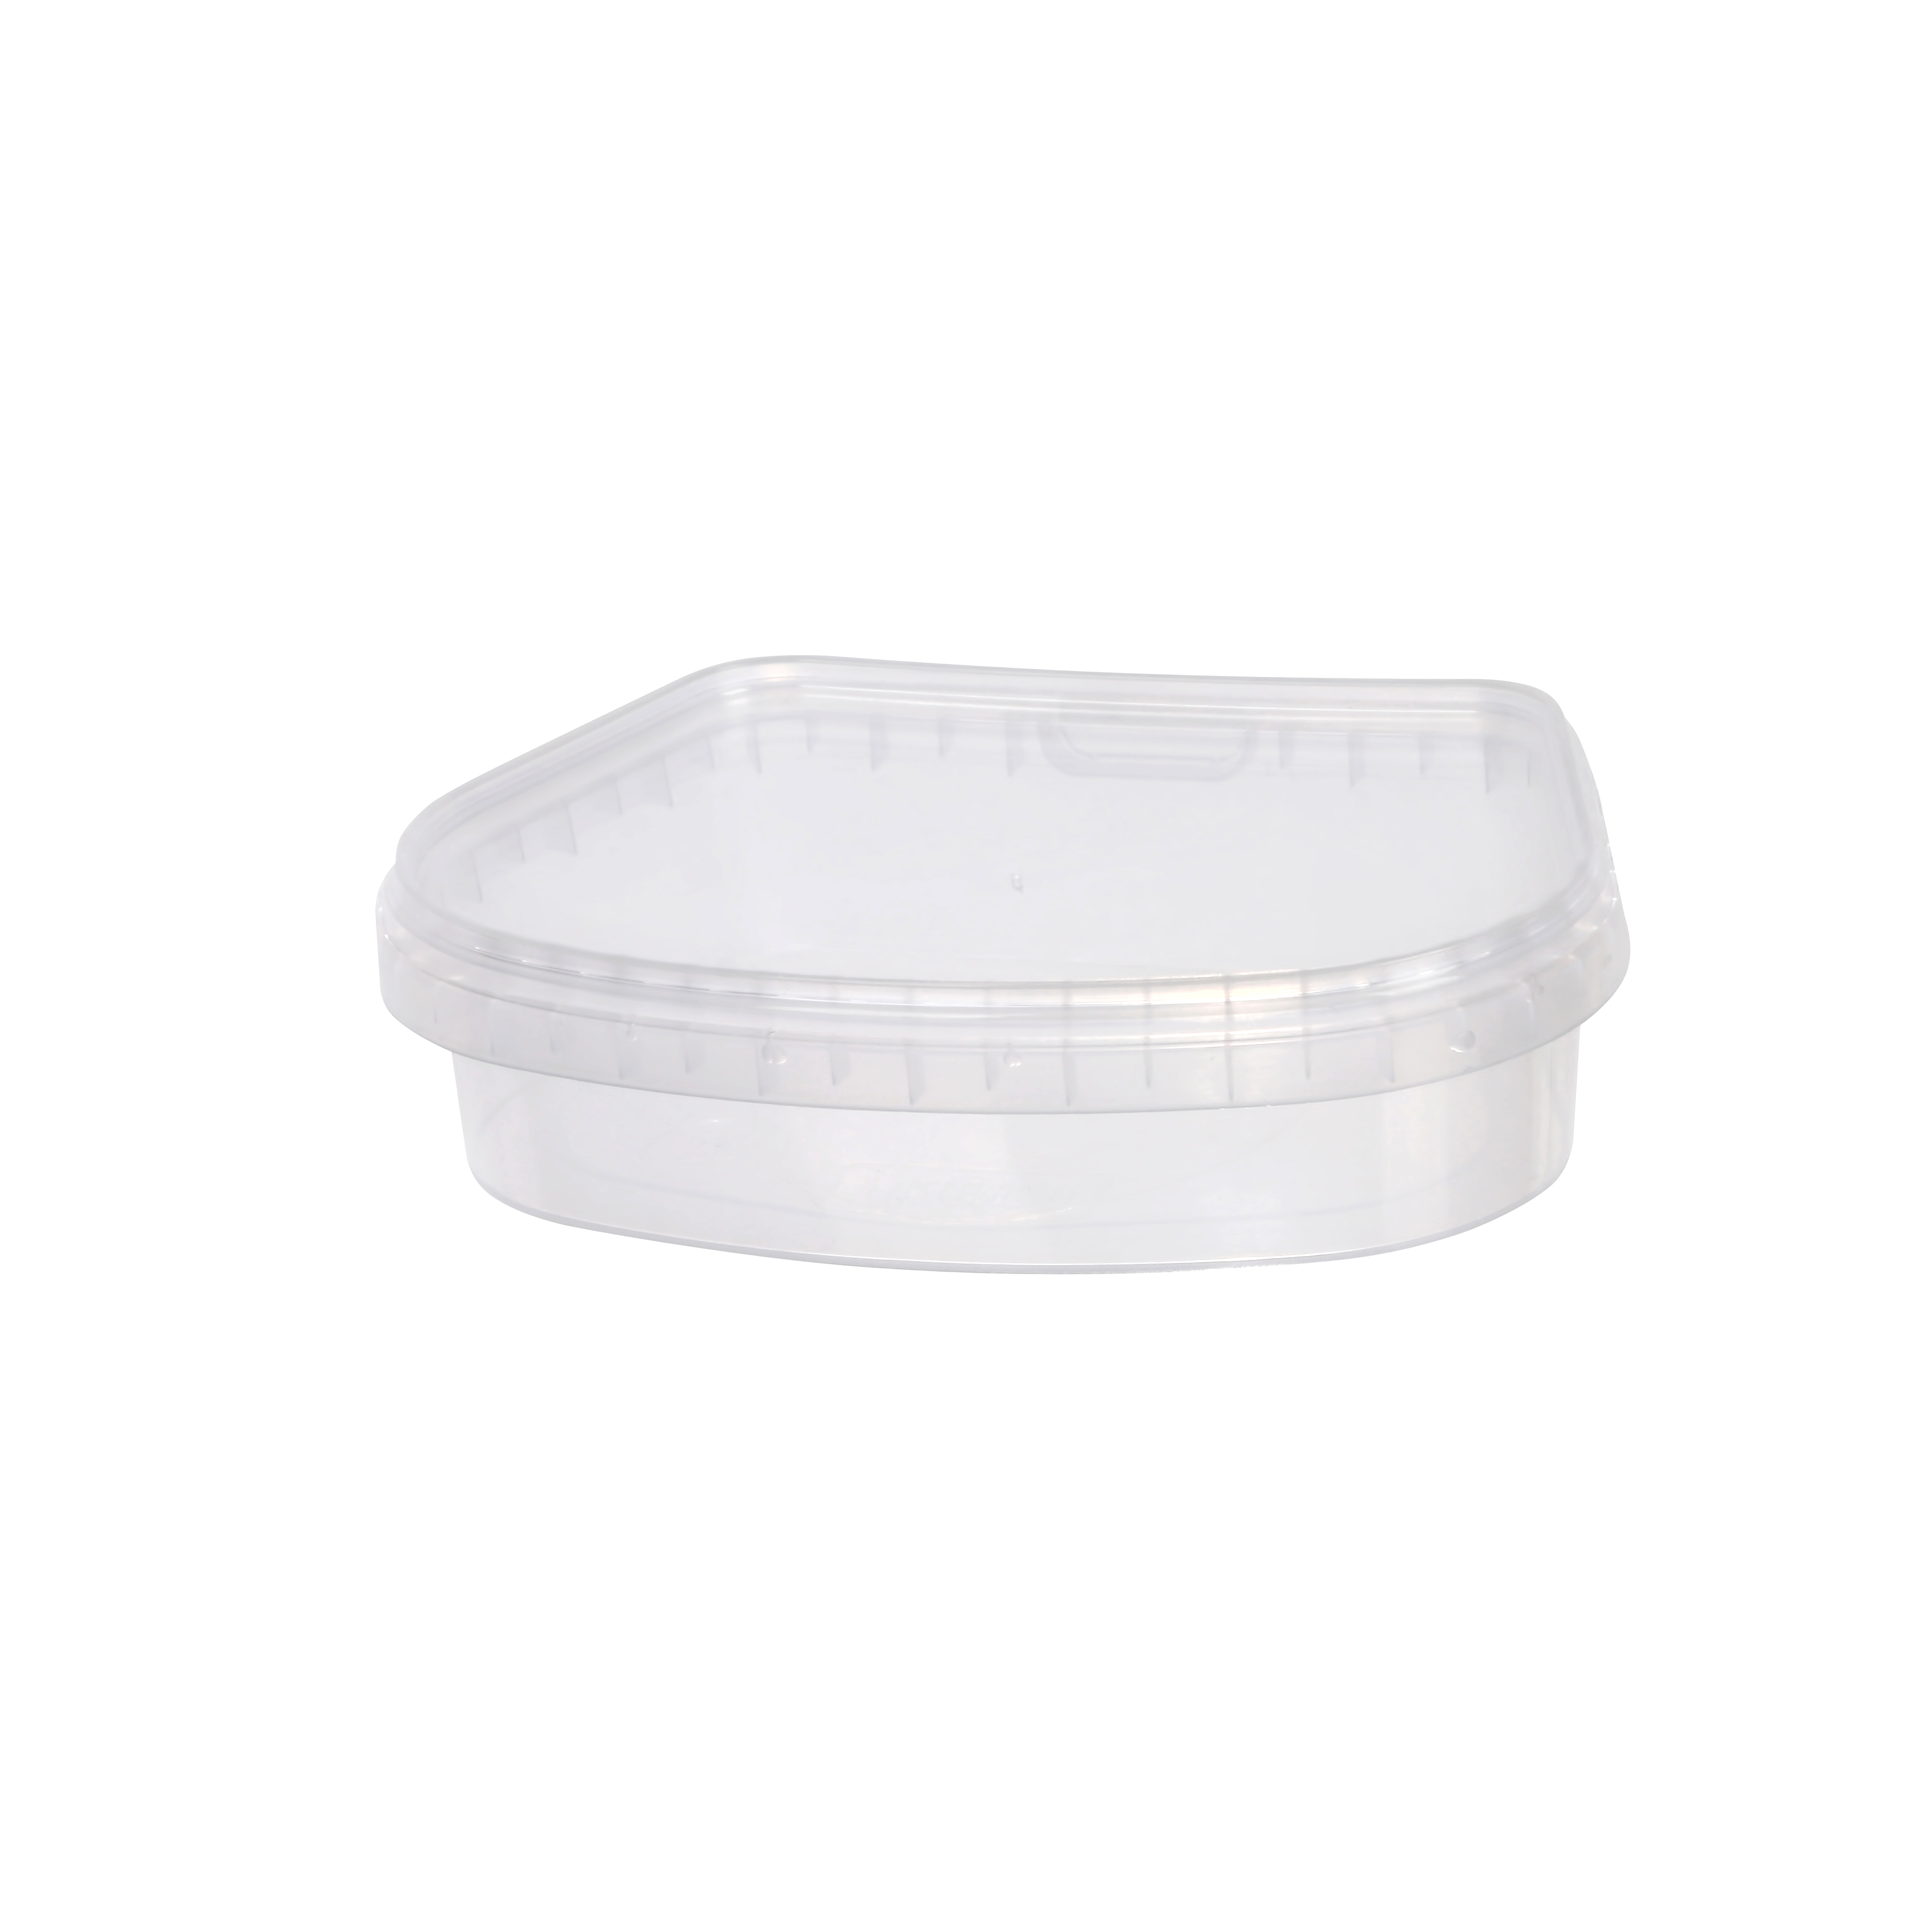 Leak proof  food container 330 ml for preserves, caviar, pickled fish.